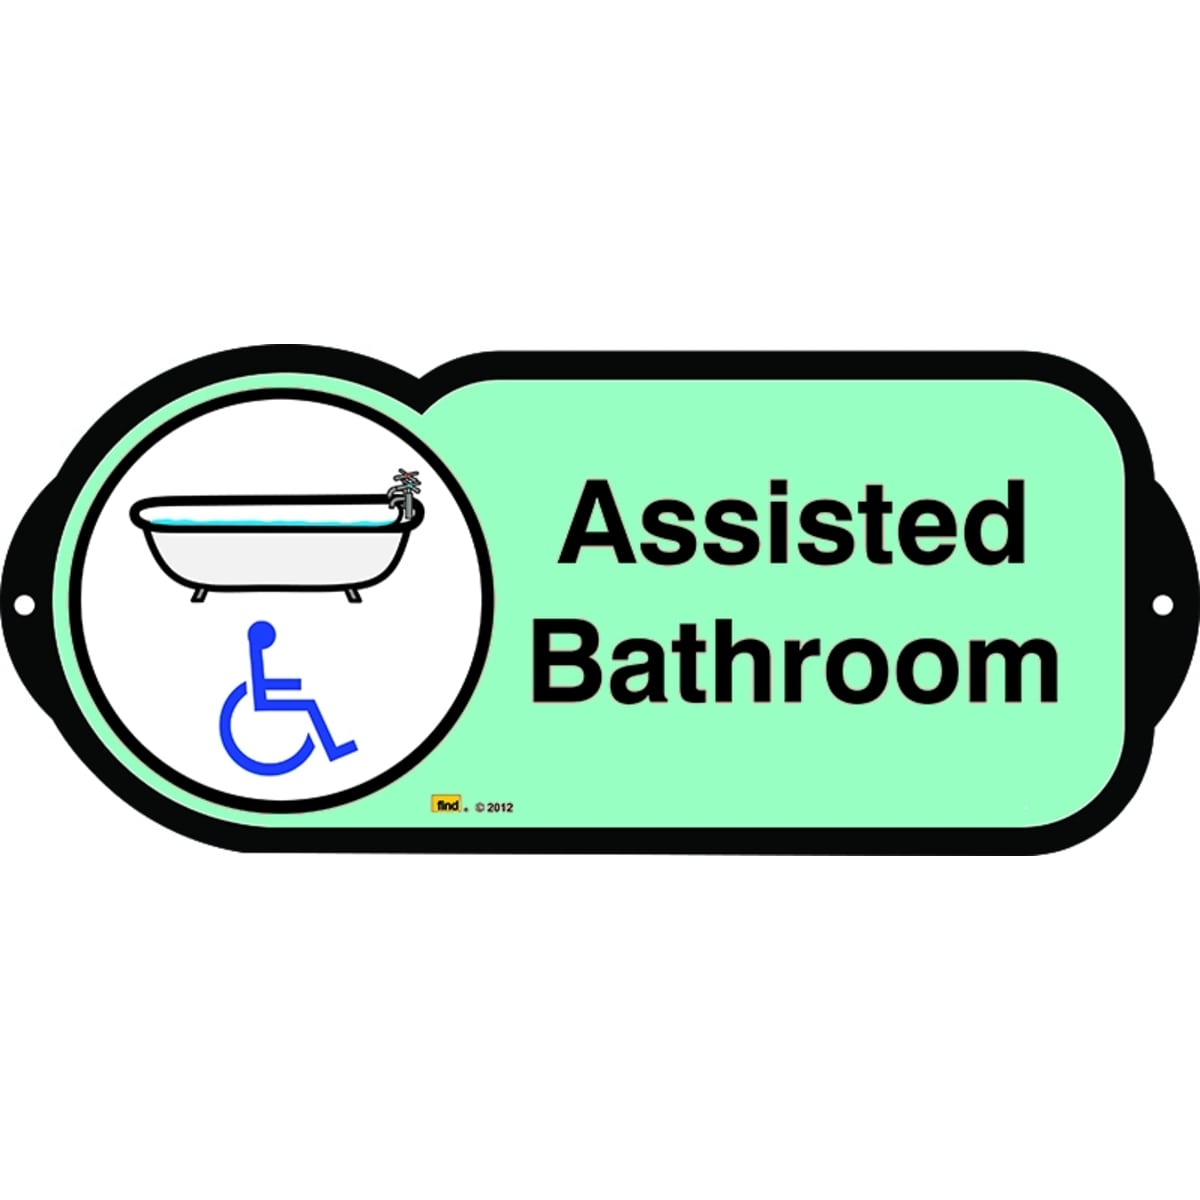 Assisted Bathroom sign for autism and learning disabilities - signage